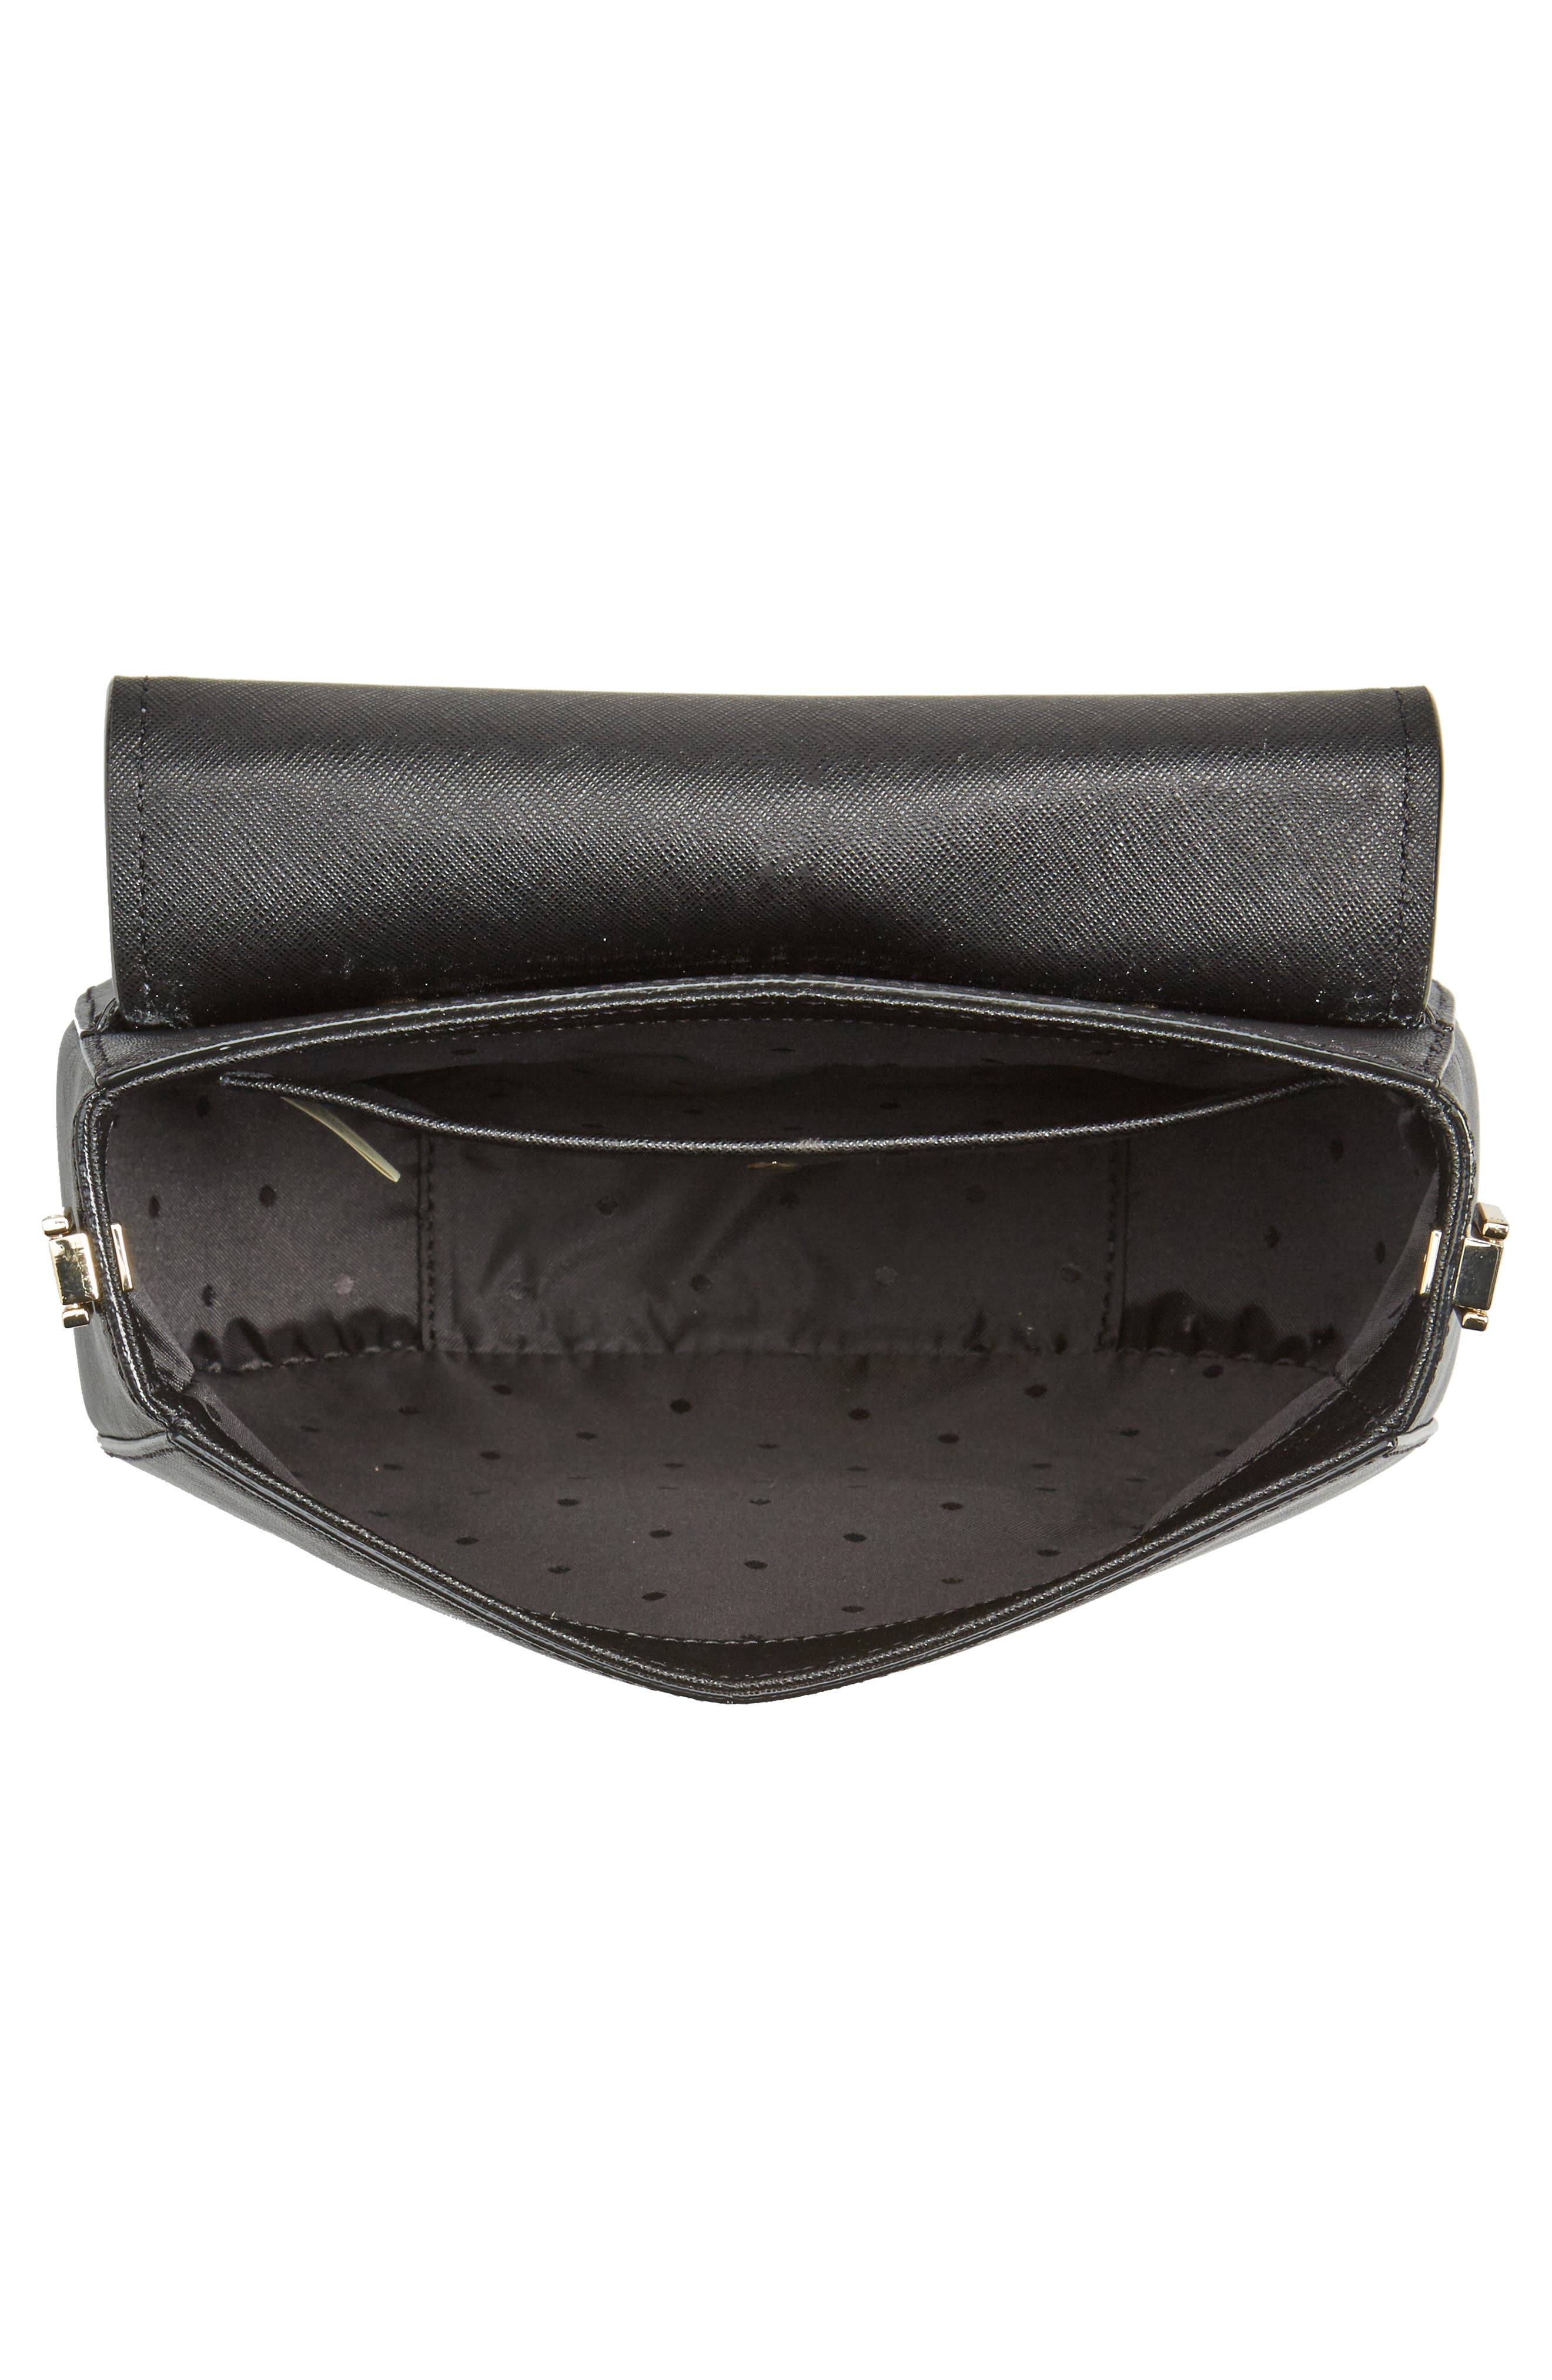 make it mine - byrdie leather saddle bag,                             Alternate thumbnail 4, color,                             001